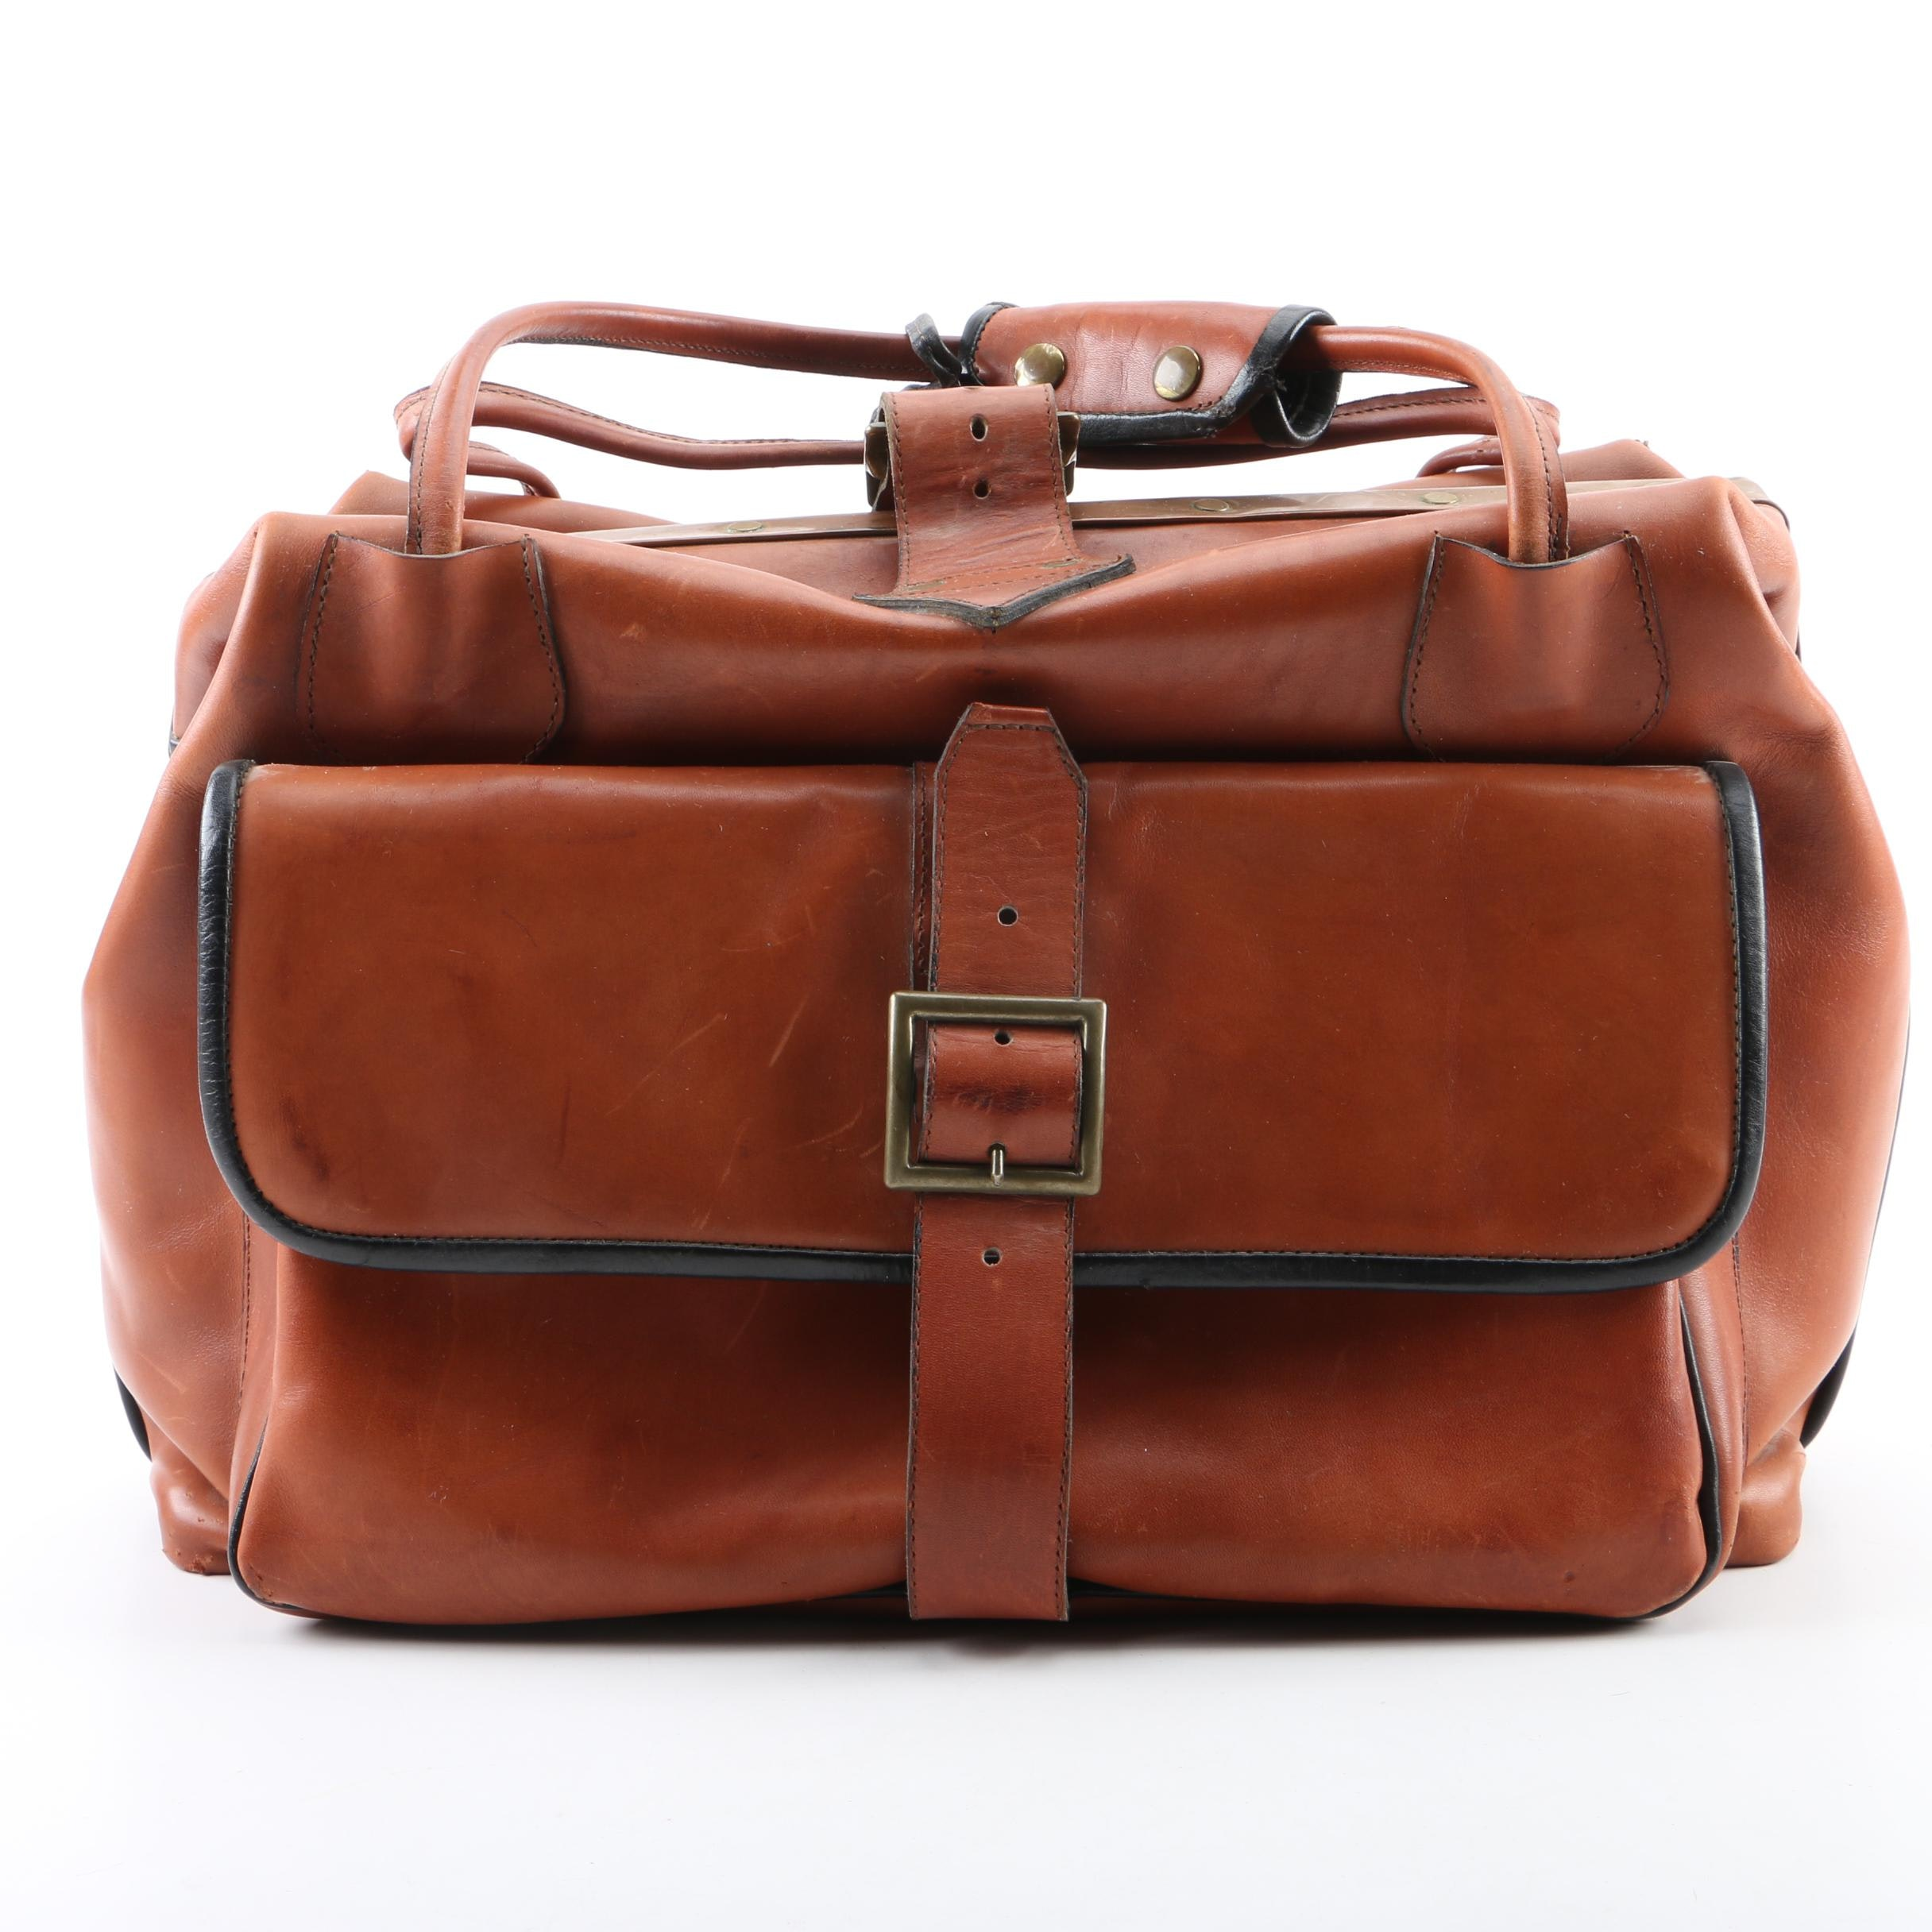 Vintage Leather Doctor's Bag with Copper Trim